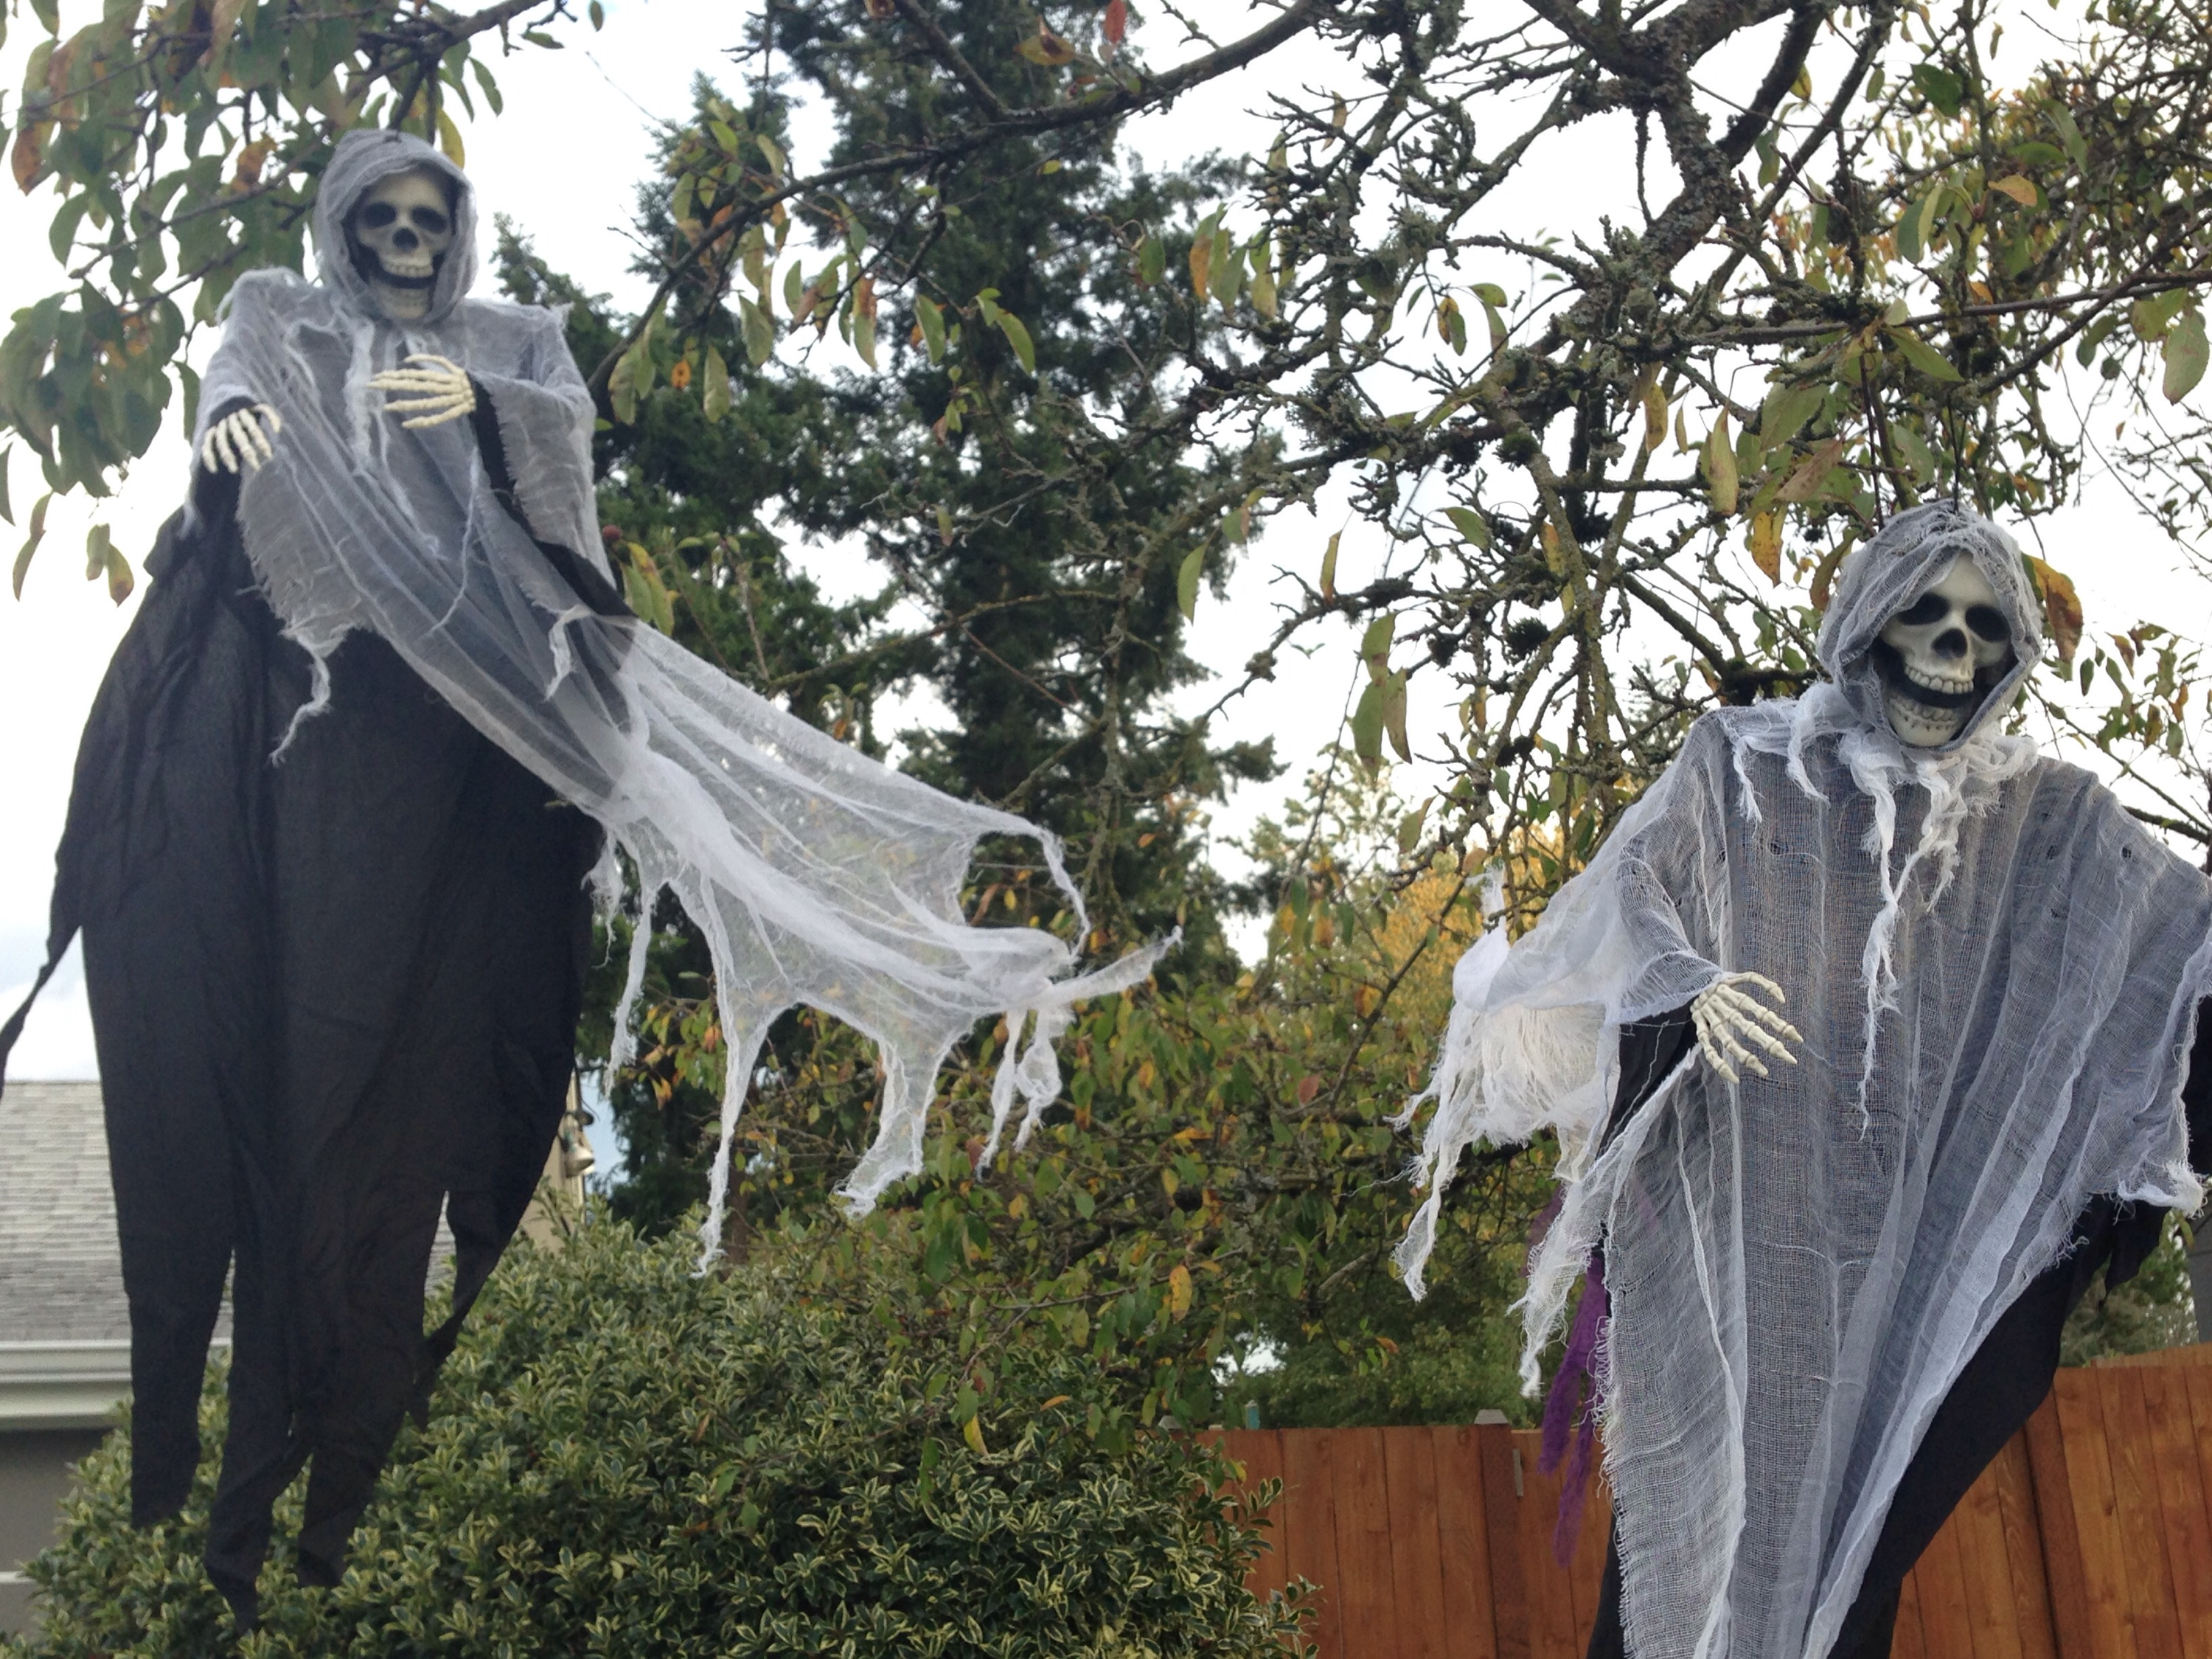 halloween yard decor 2015 - Halloween Yard Decor